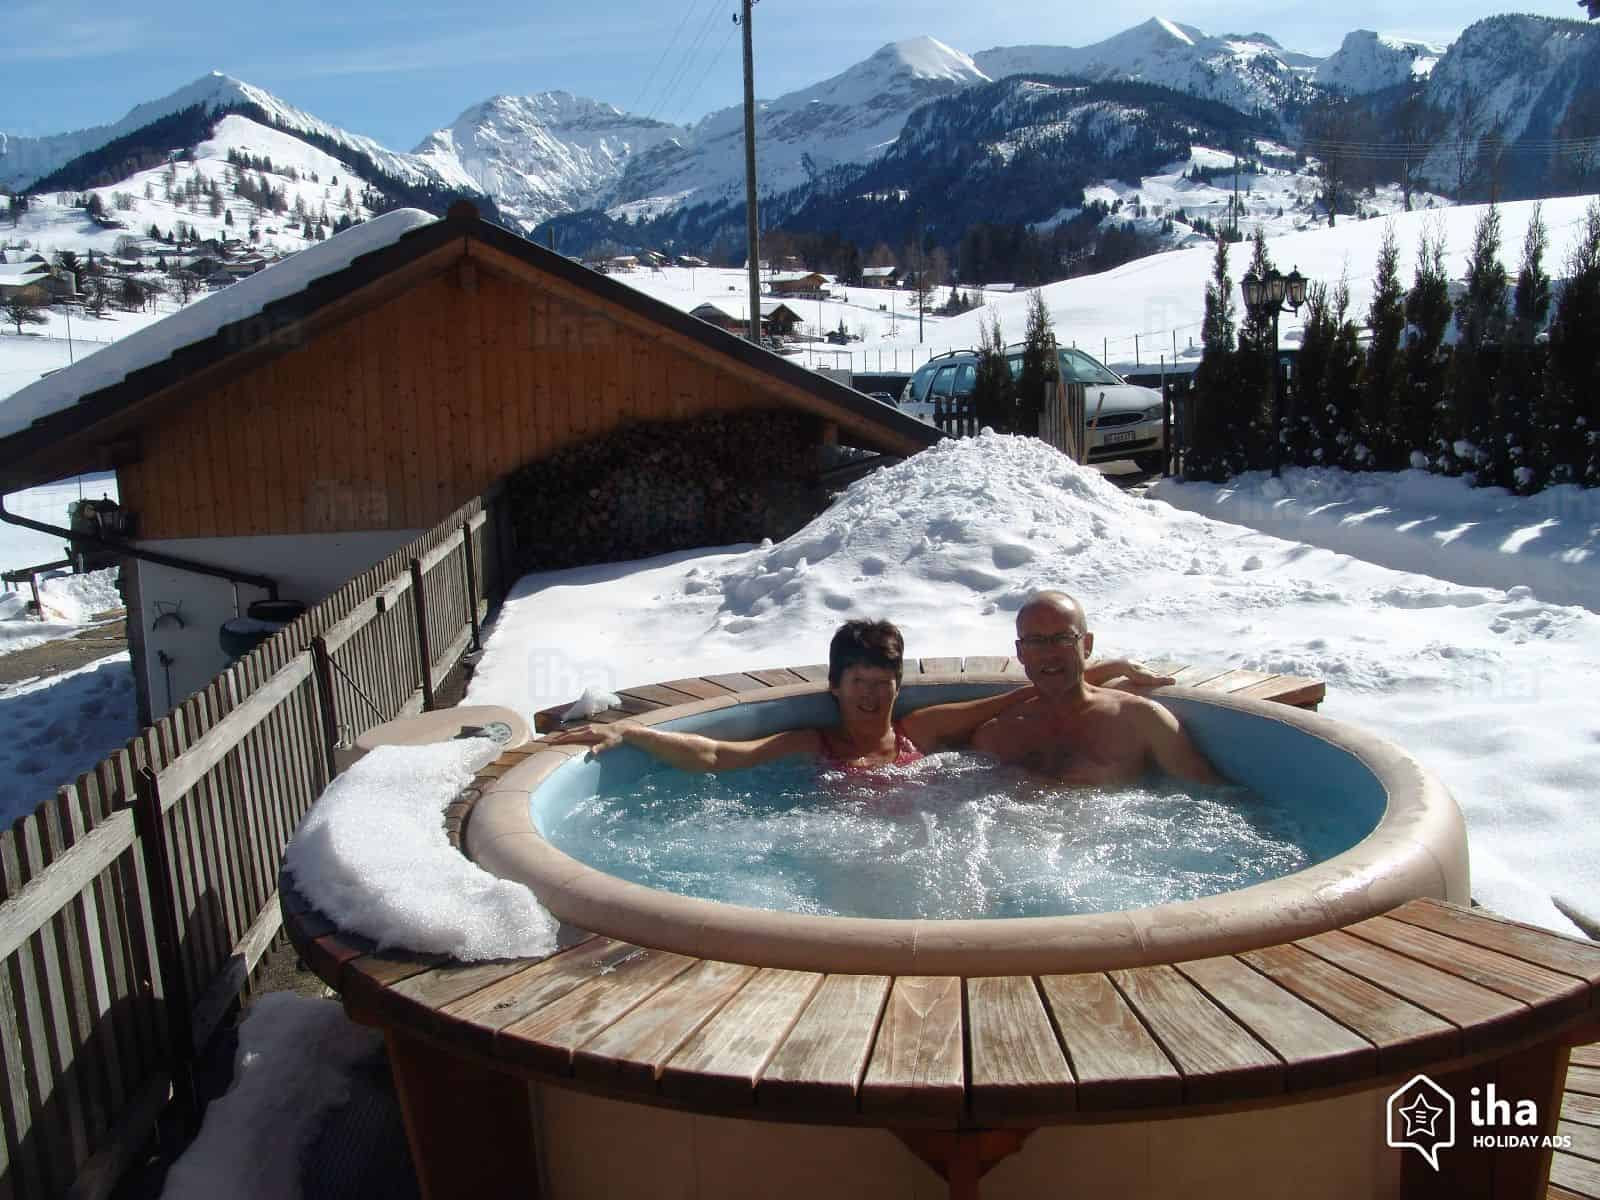 Bild Intex Whirlpool 2 Personen im Winter